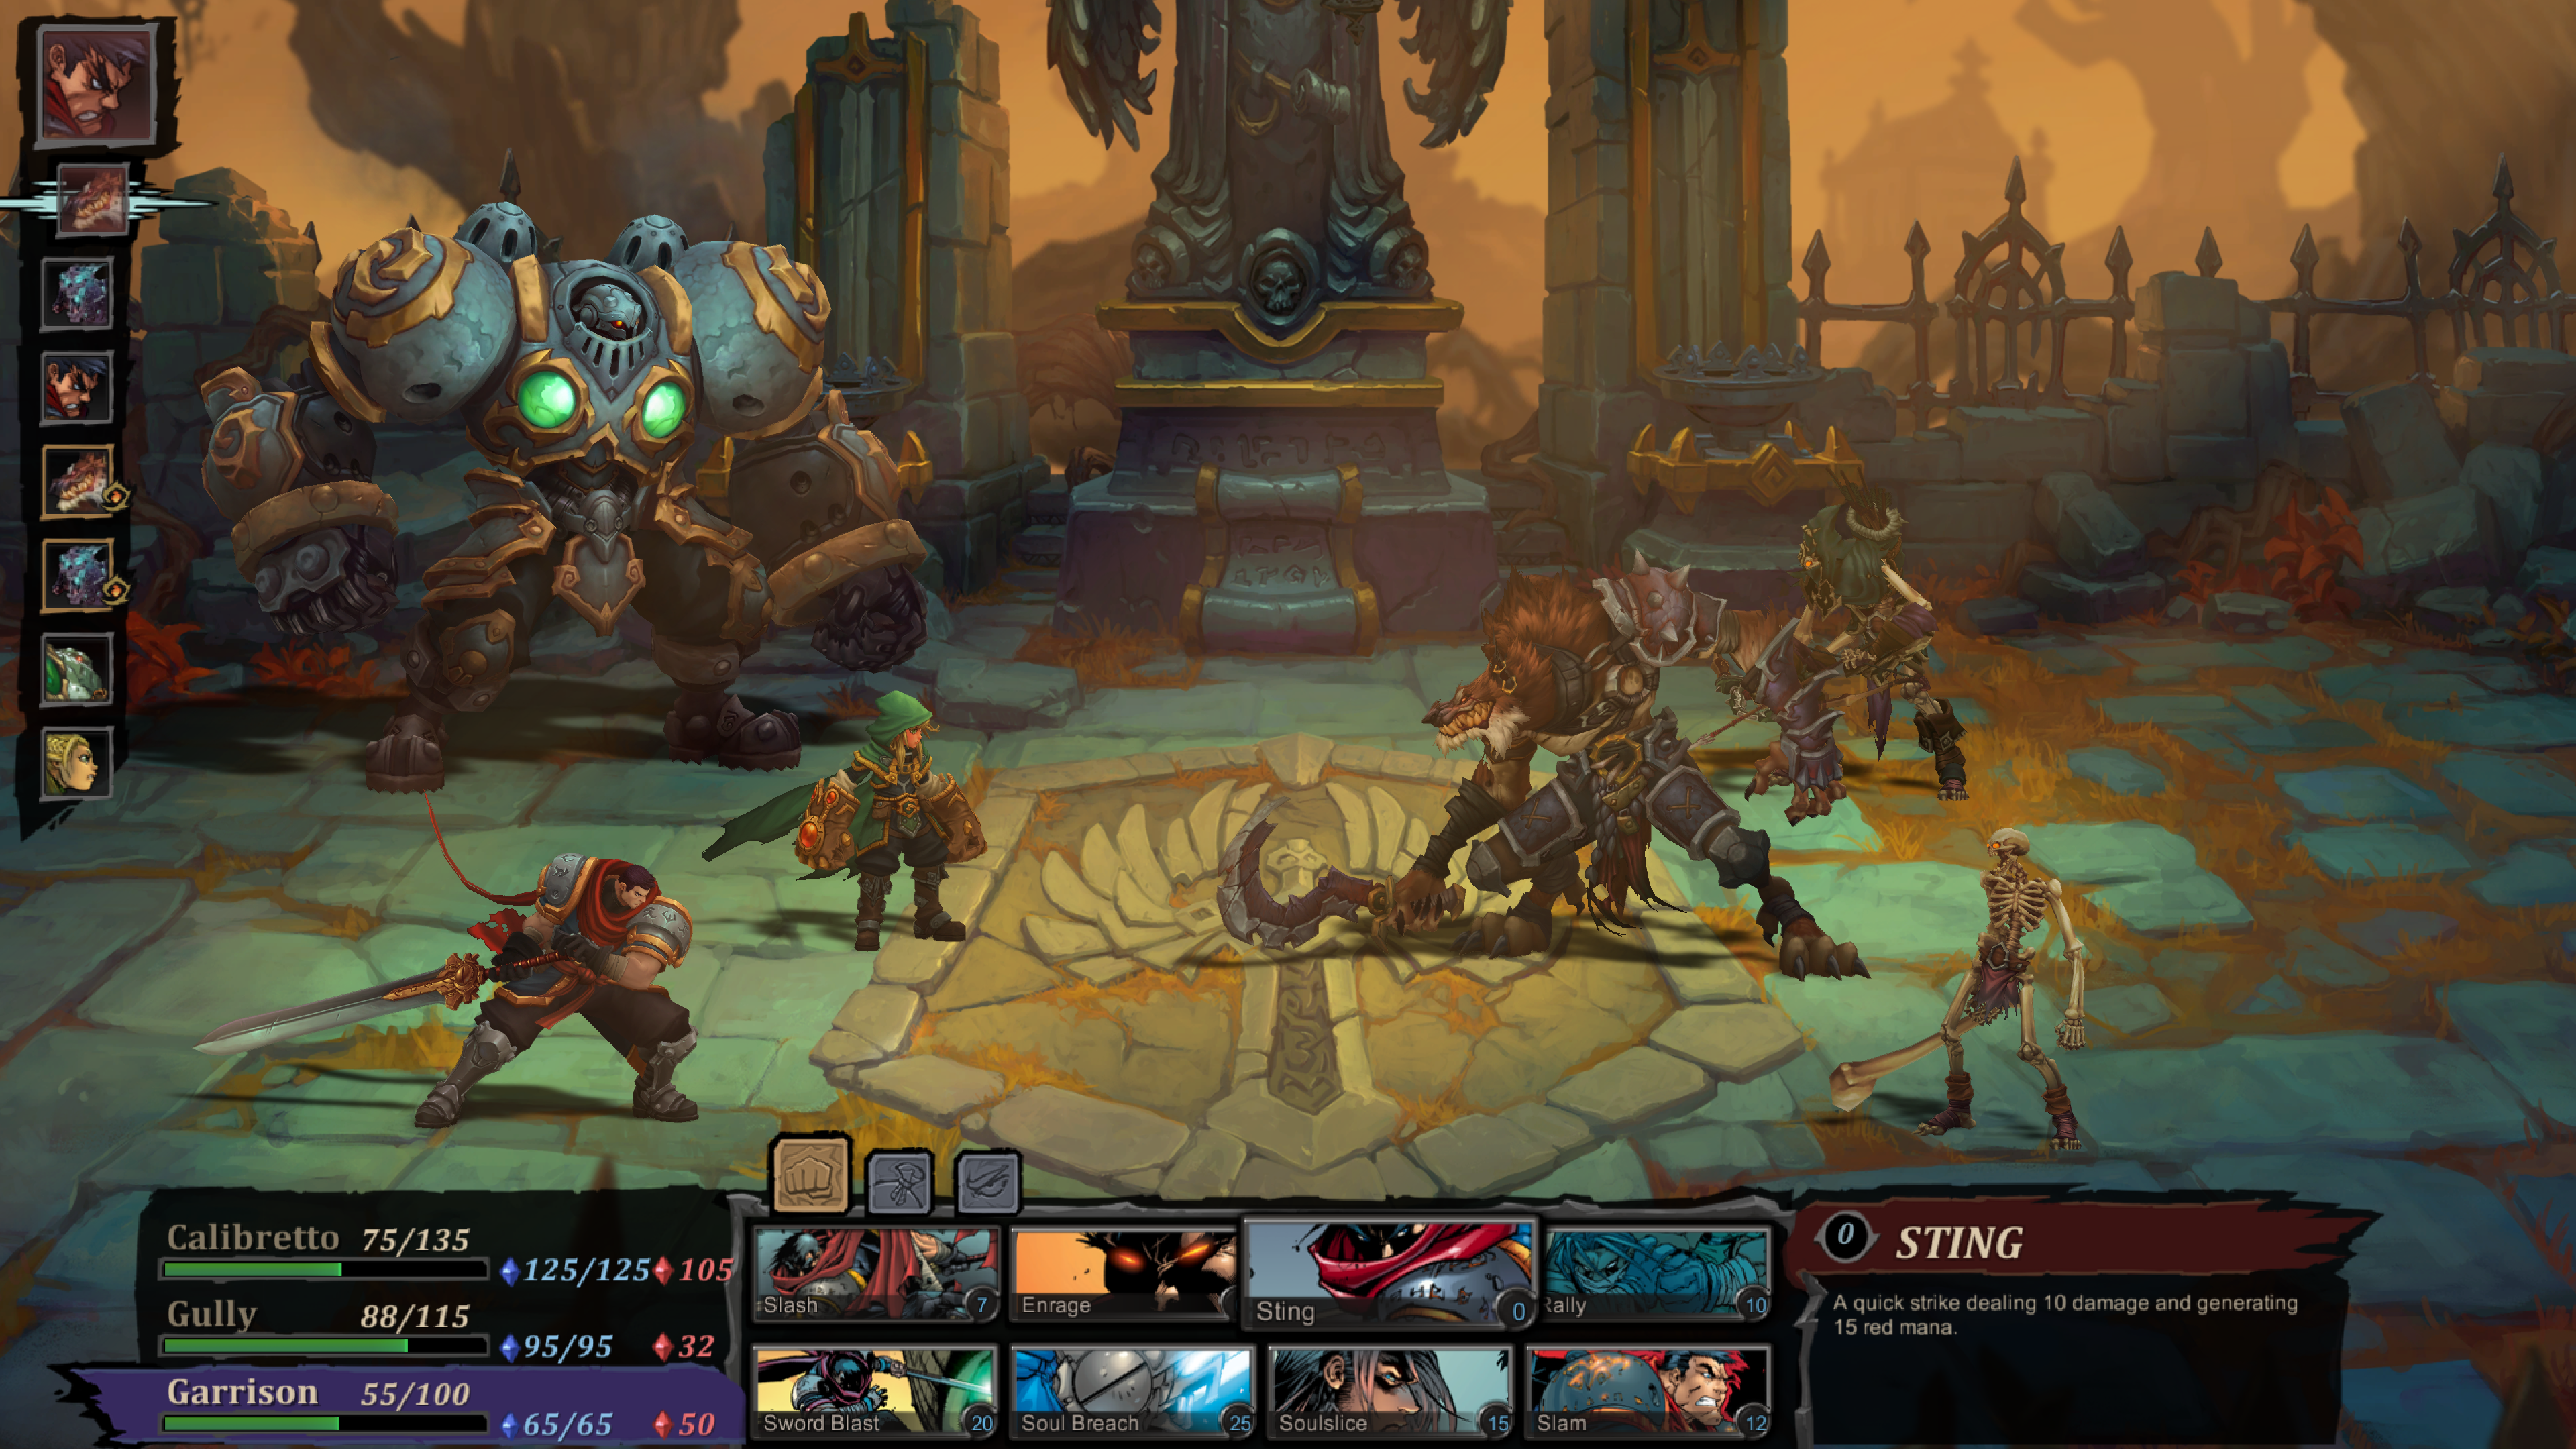 battle-chasers-nightwar-airship-syndicate-thq-nordic-rpg-turn-based-dungeon-crawler-jrpg-playstation-4-xbox-one-pc